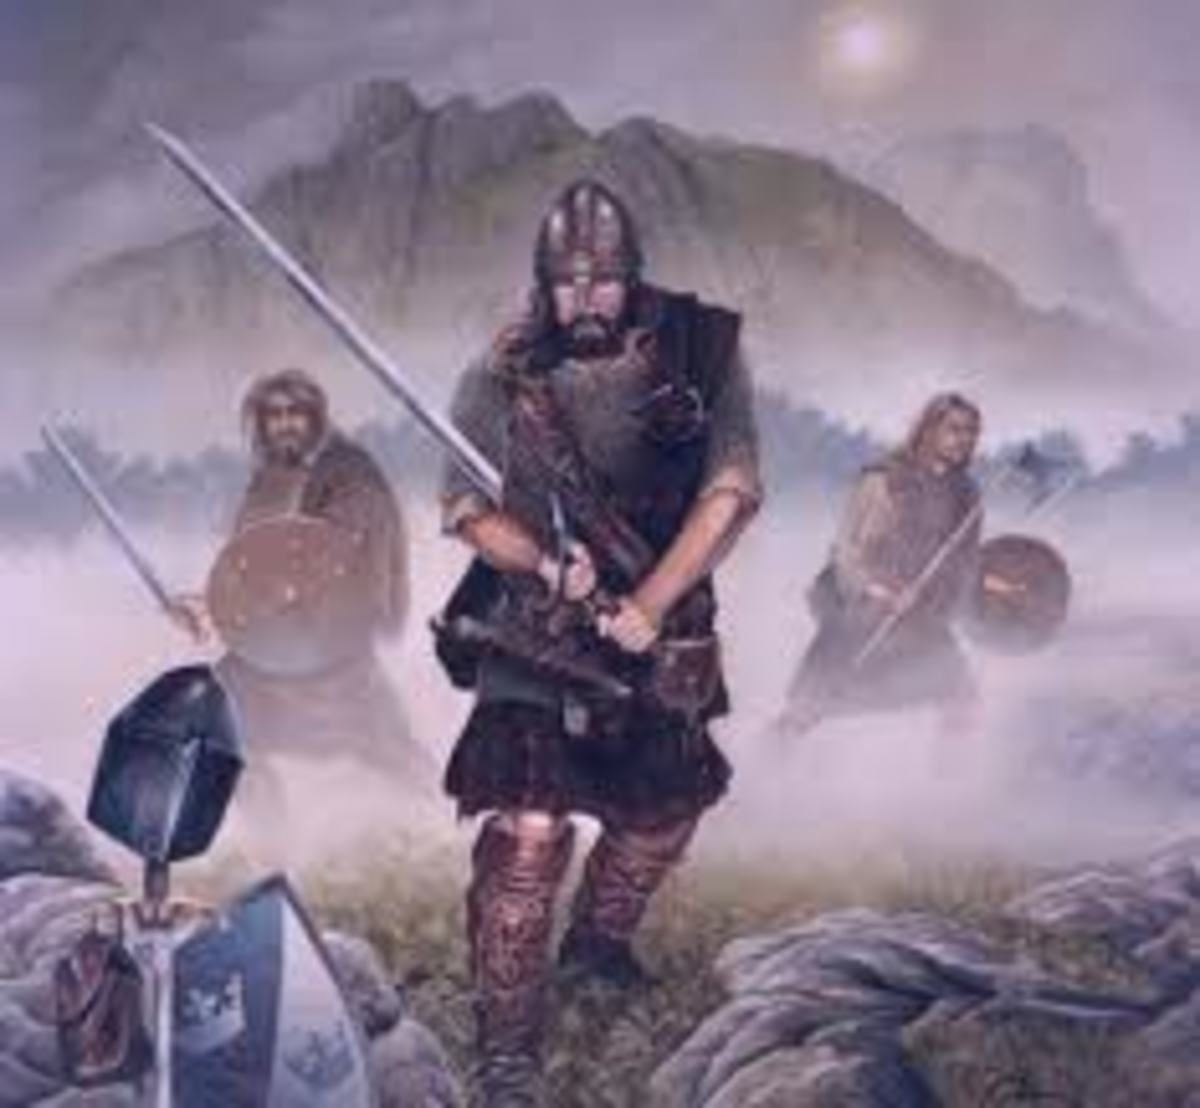 Depiction of William Wallace at Stirling Bridge